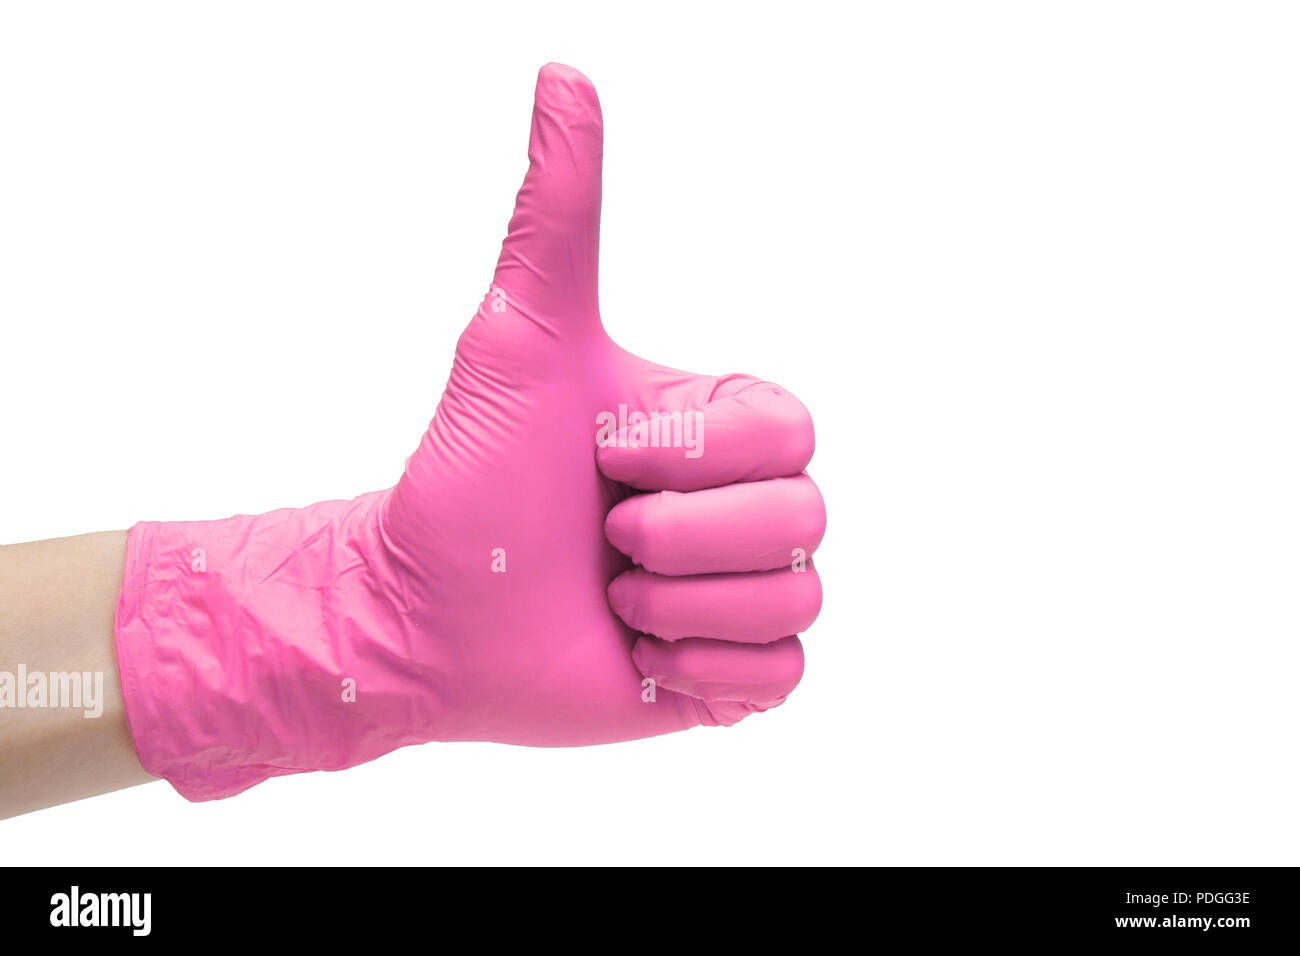 Like sign icon made of pink medical gloves. Hand finger up symbol. Thumbs up gesture. Isolated on white background - Stock Image